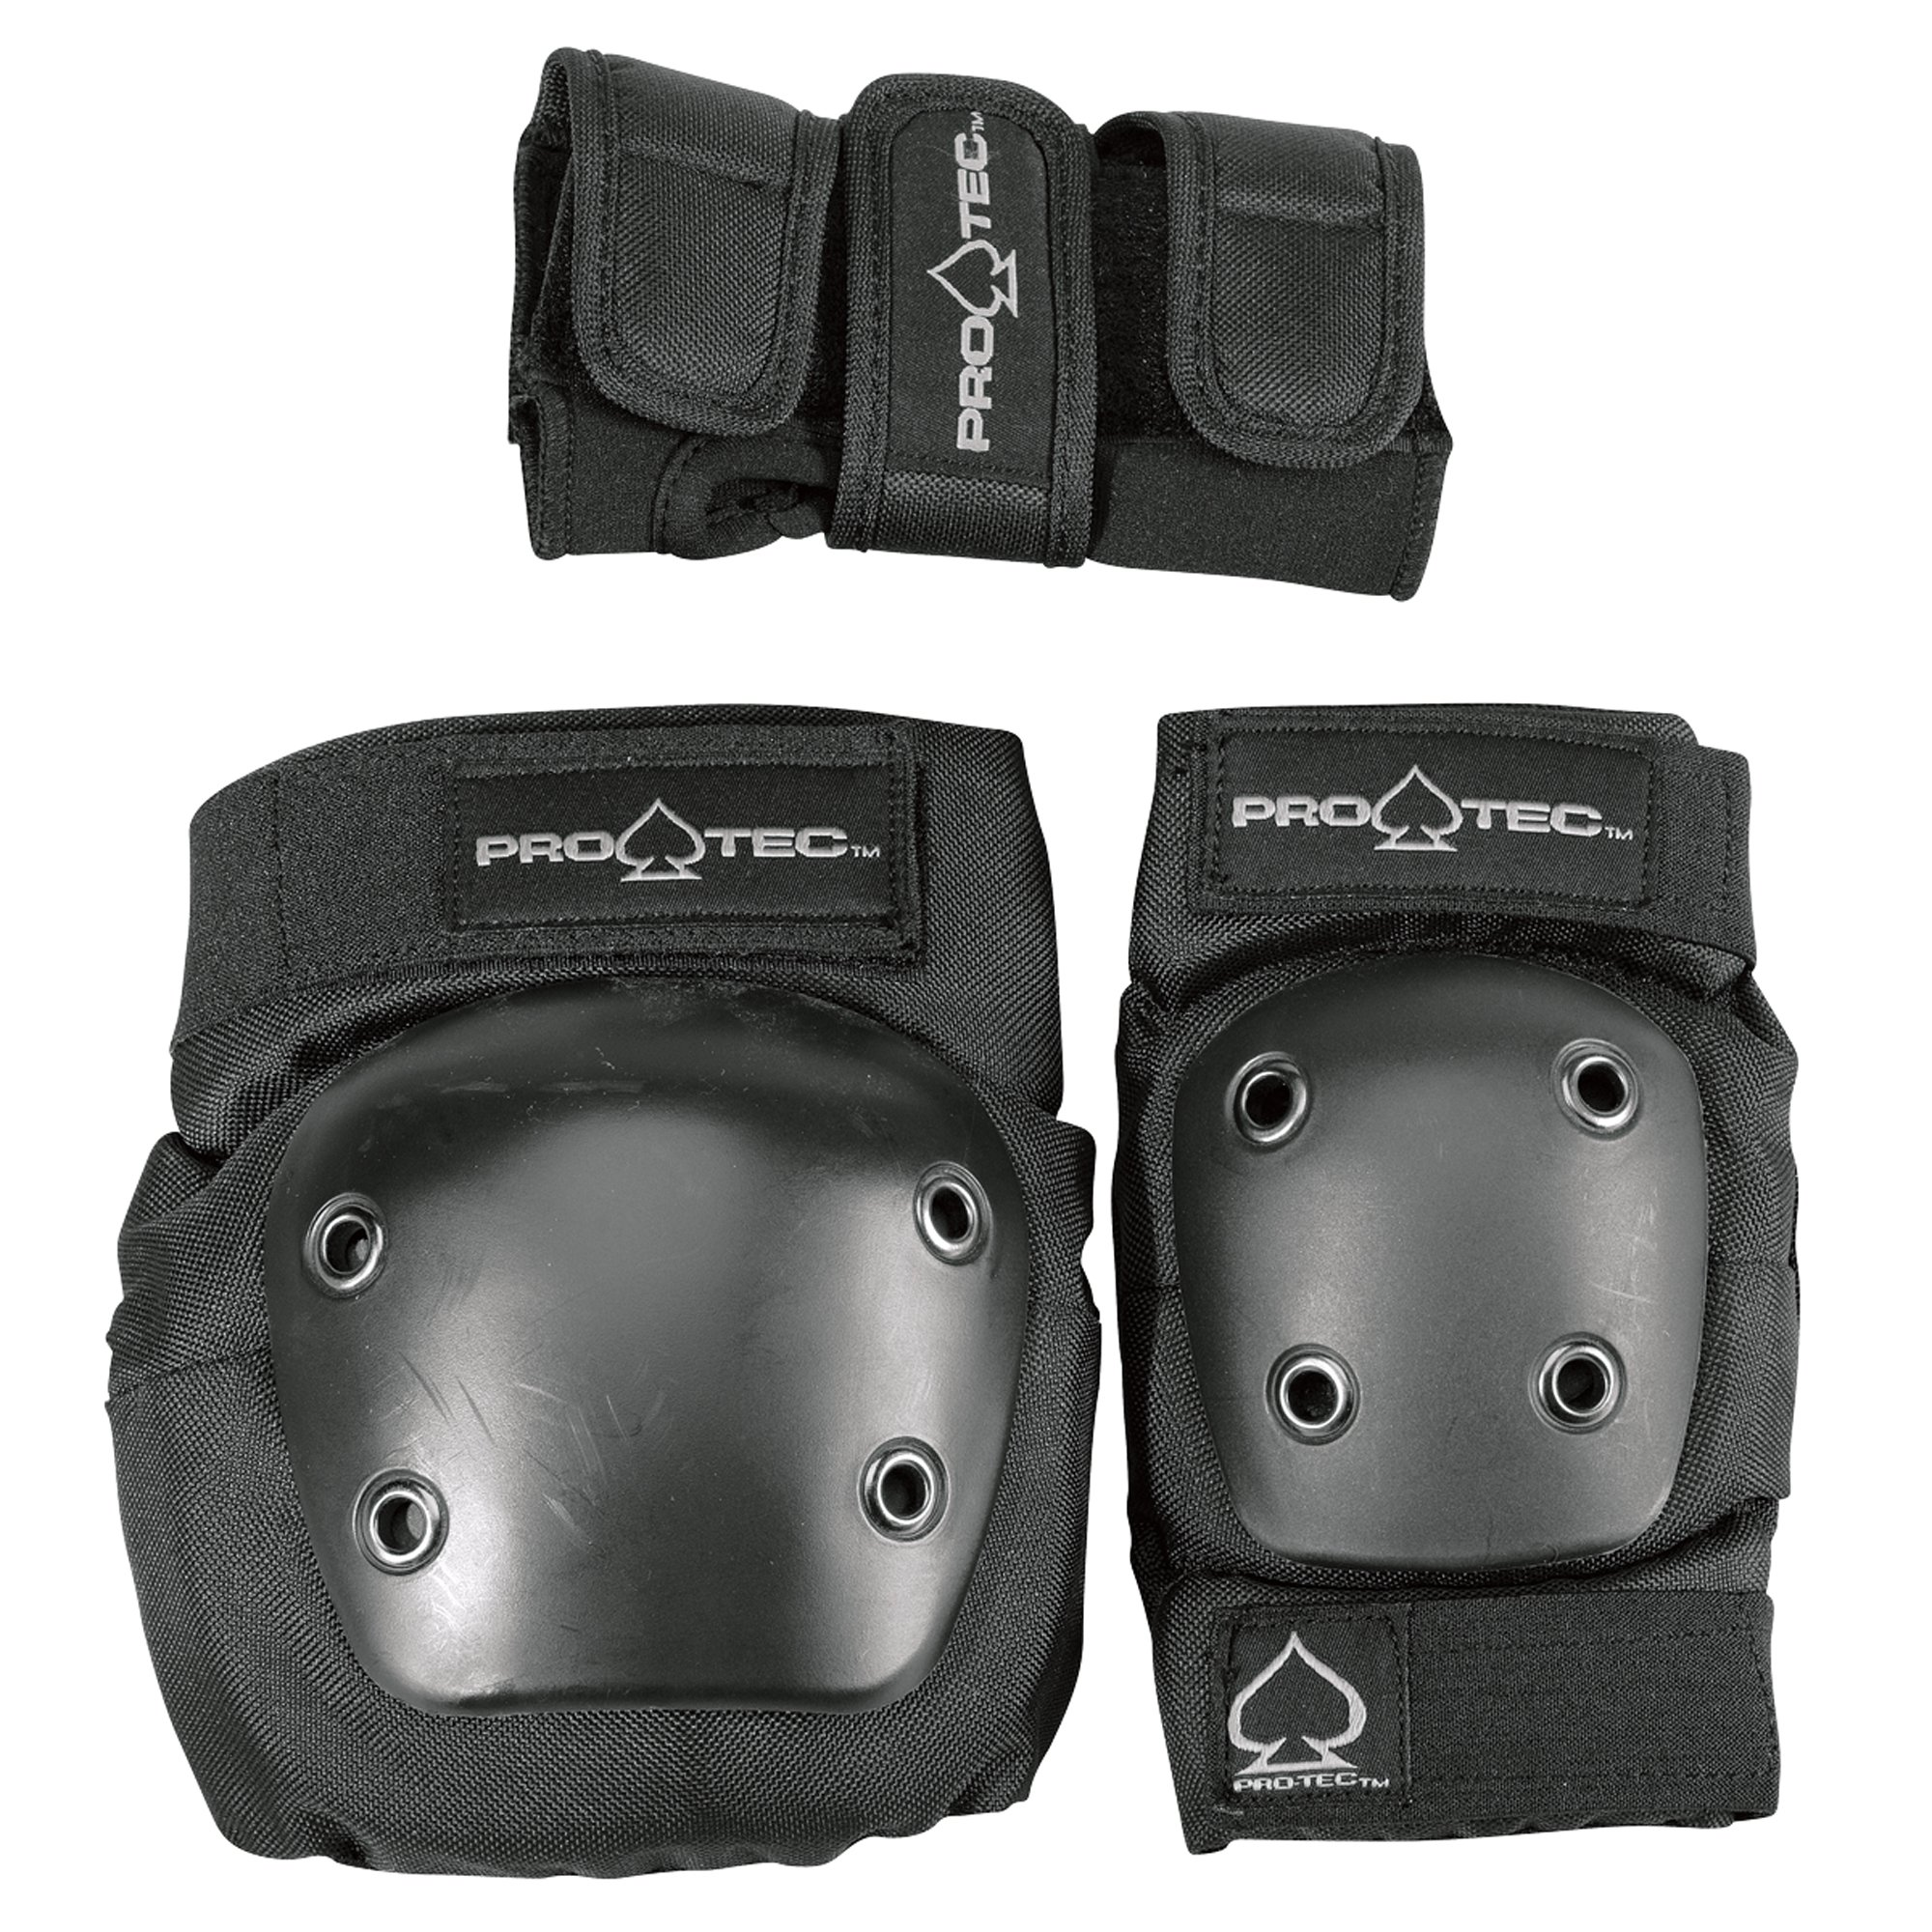 Pro-Tec Street 3-Pack Elbow, Knee, and Wrist Pad Combo - Black (Youth Small)